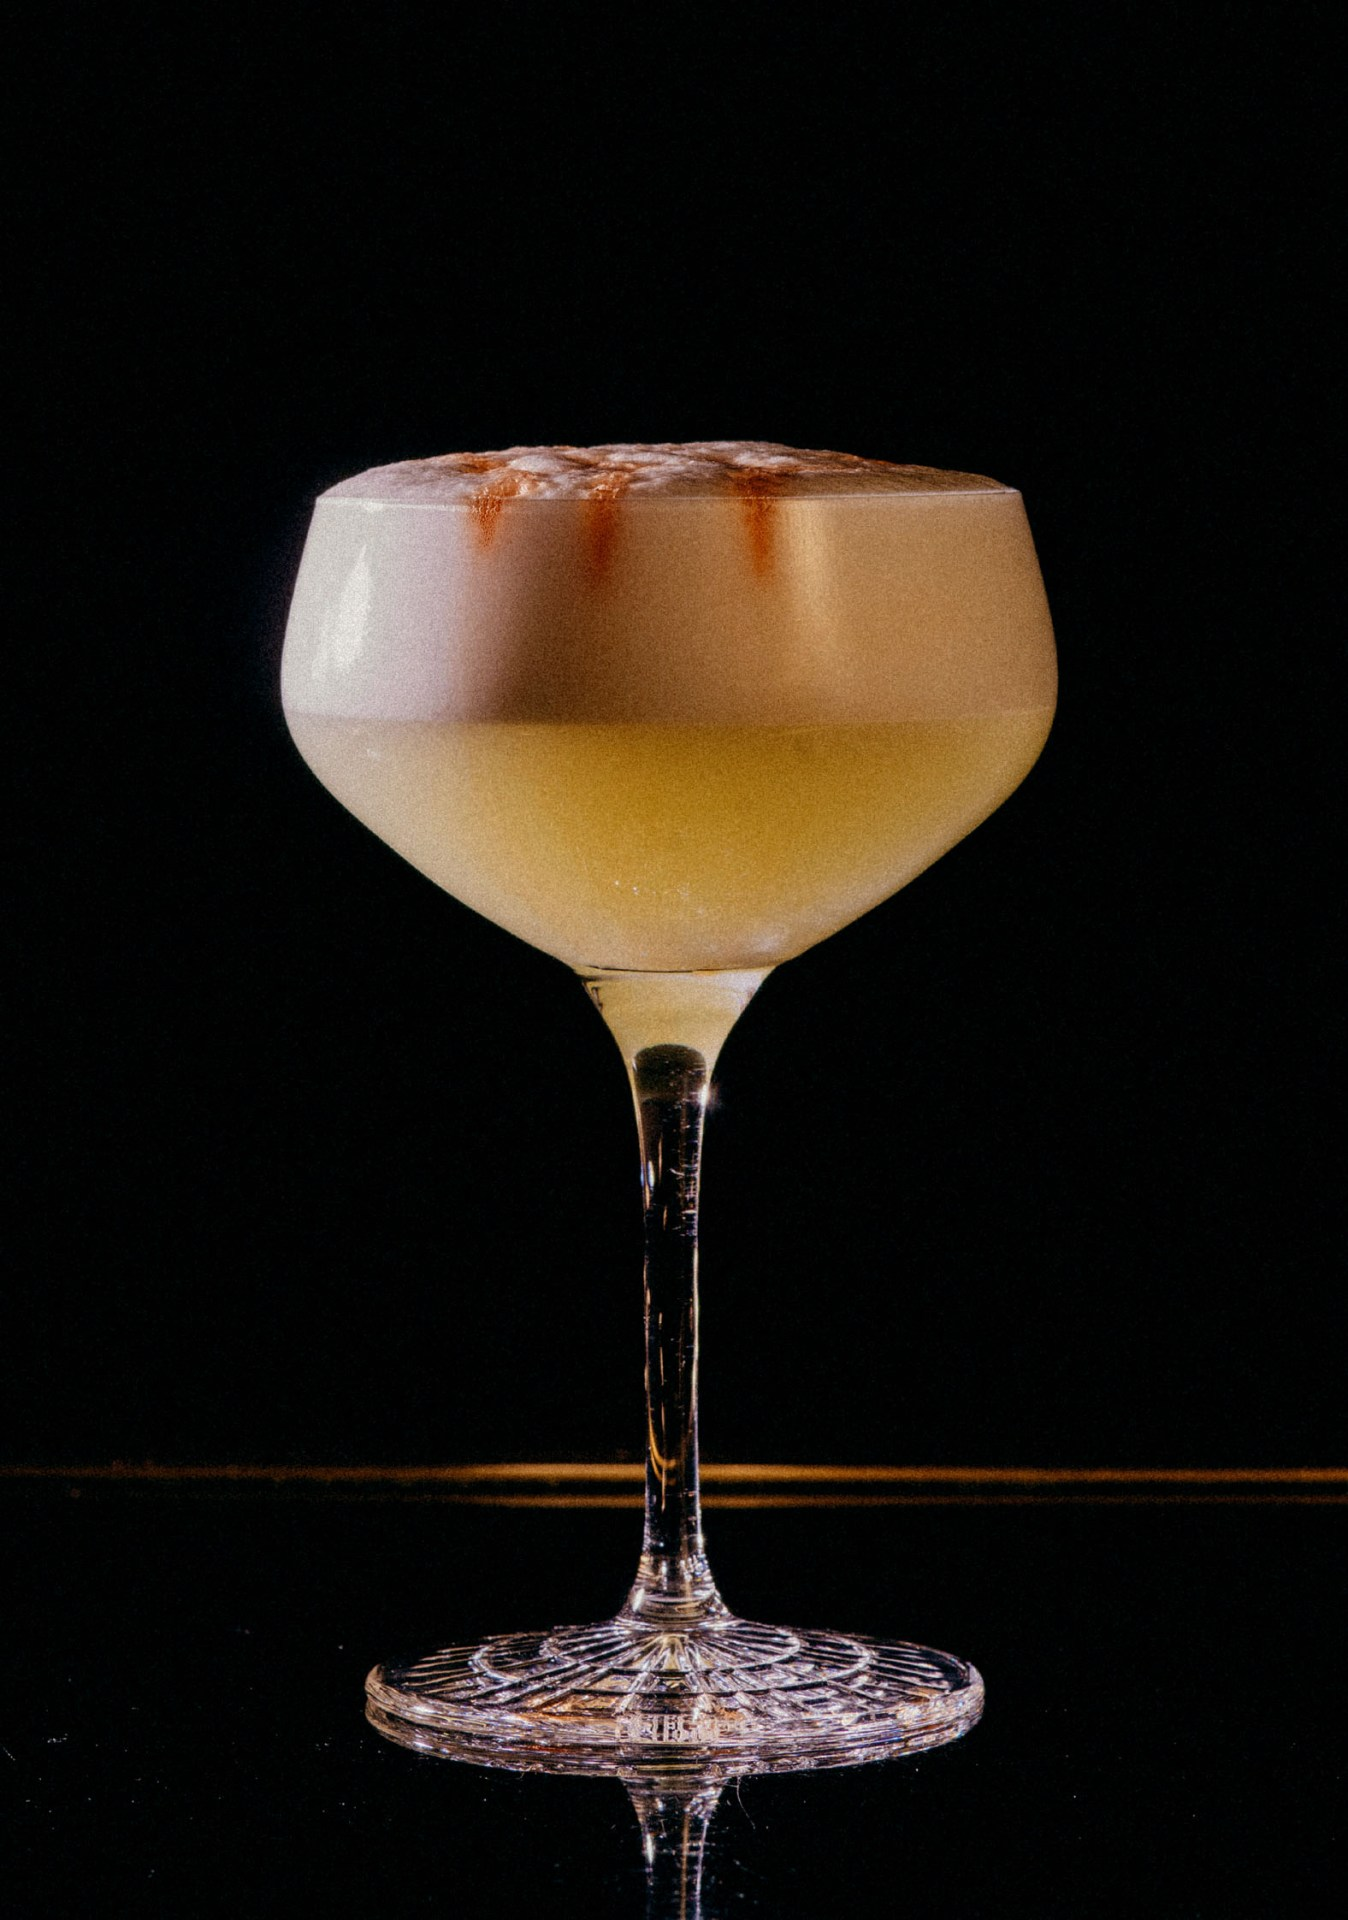 Recipe: 5cl Pisco 3cl Lime Juice 2cl Sugar Syrup Egg White